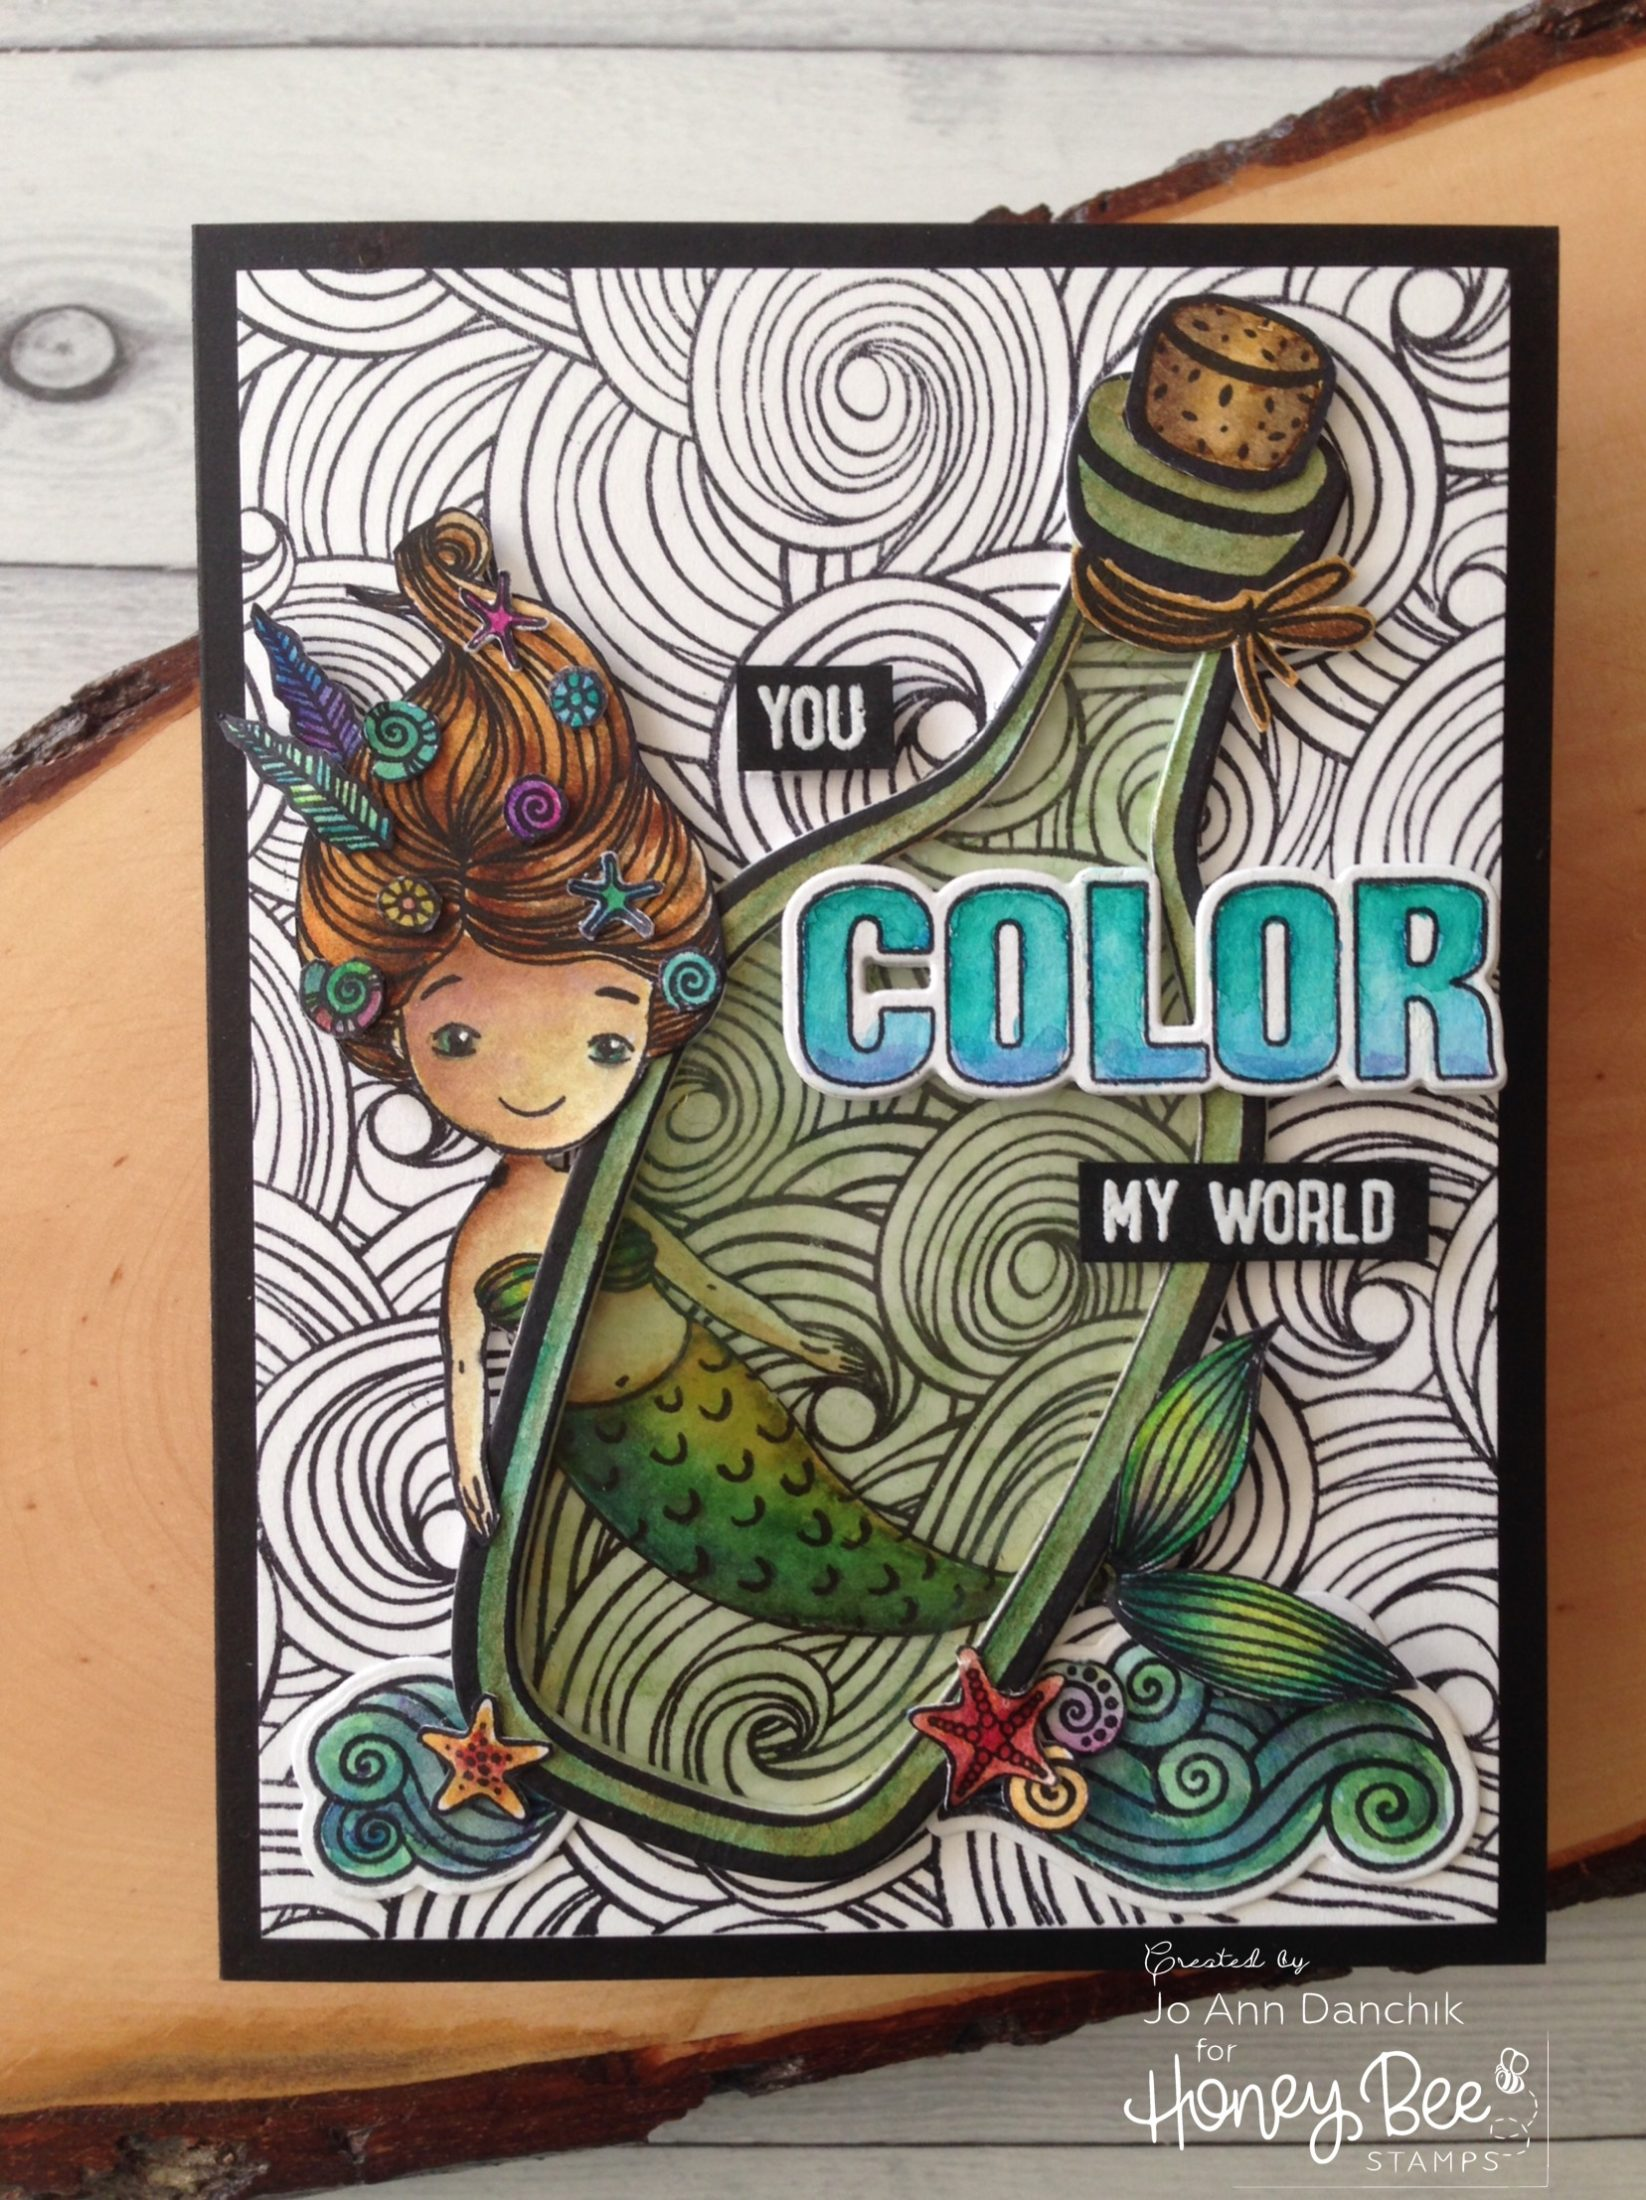 Saturday Stamping with Jo Ann: You Color My World